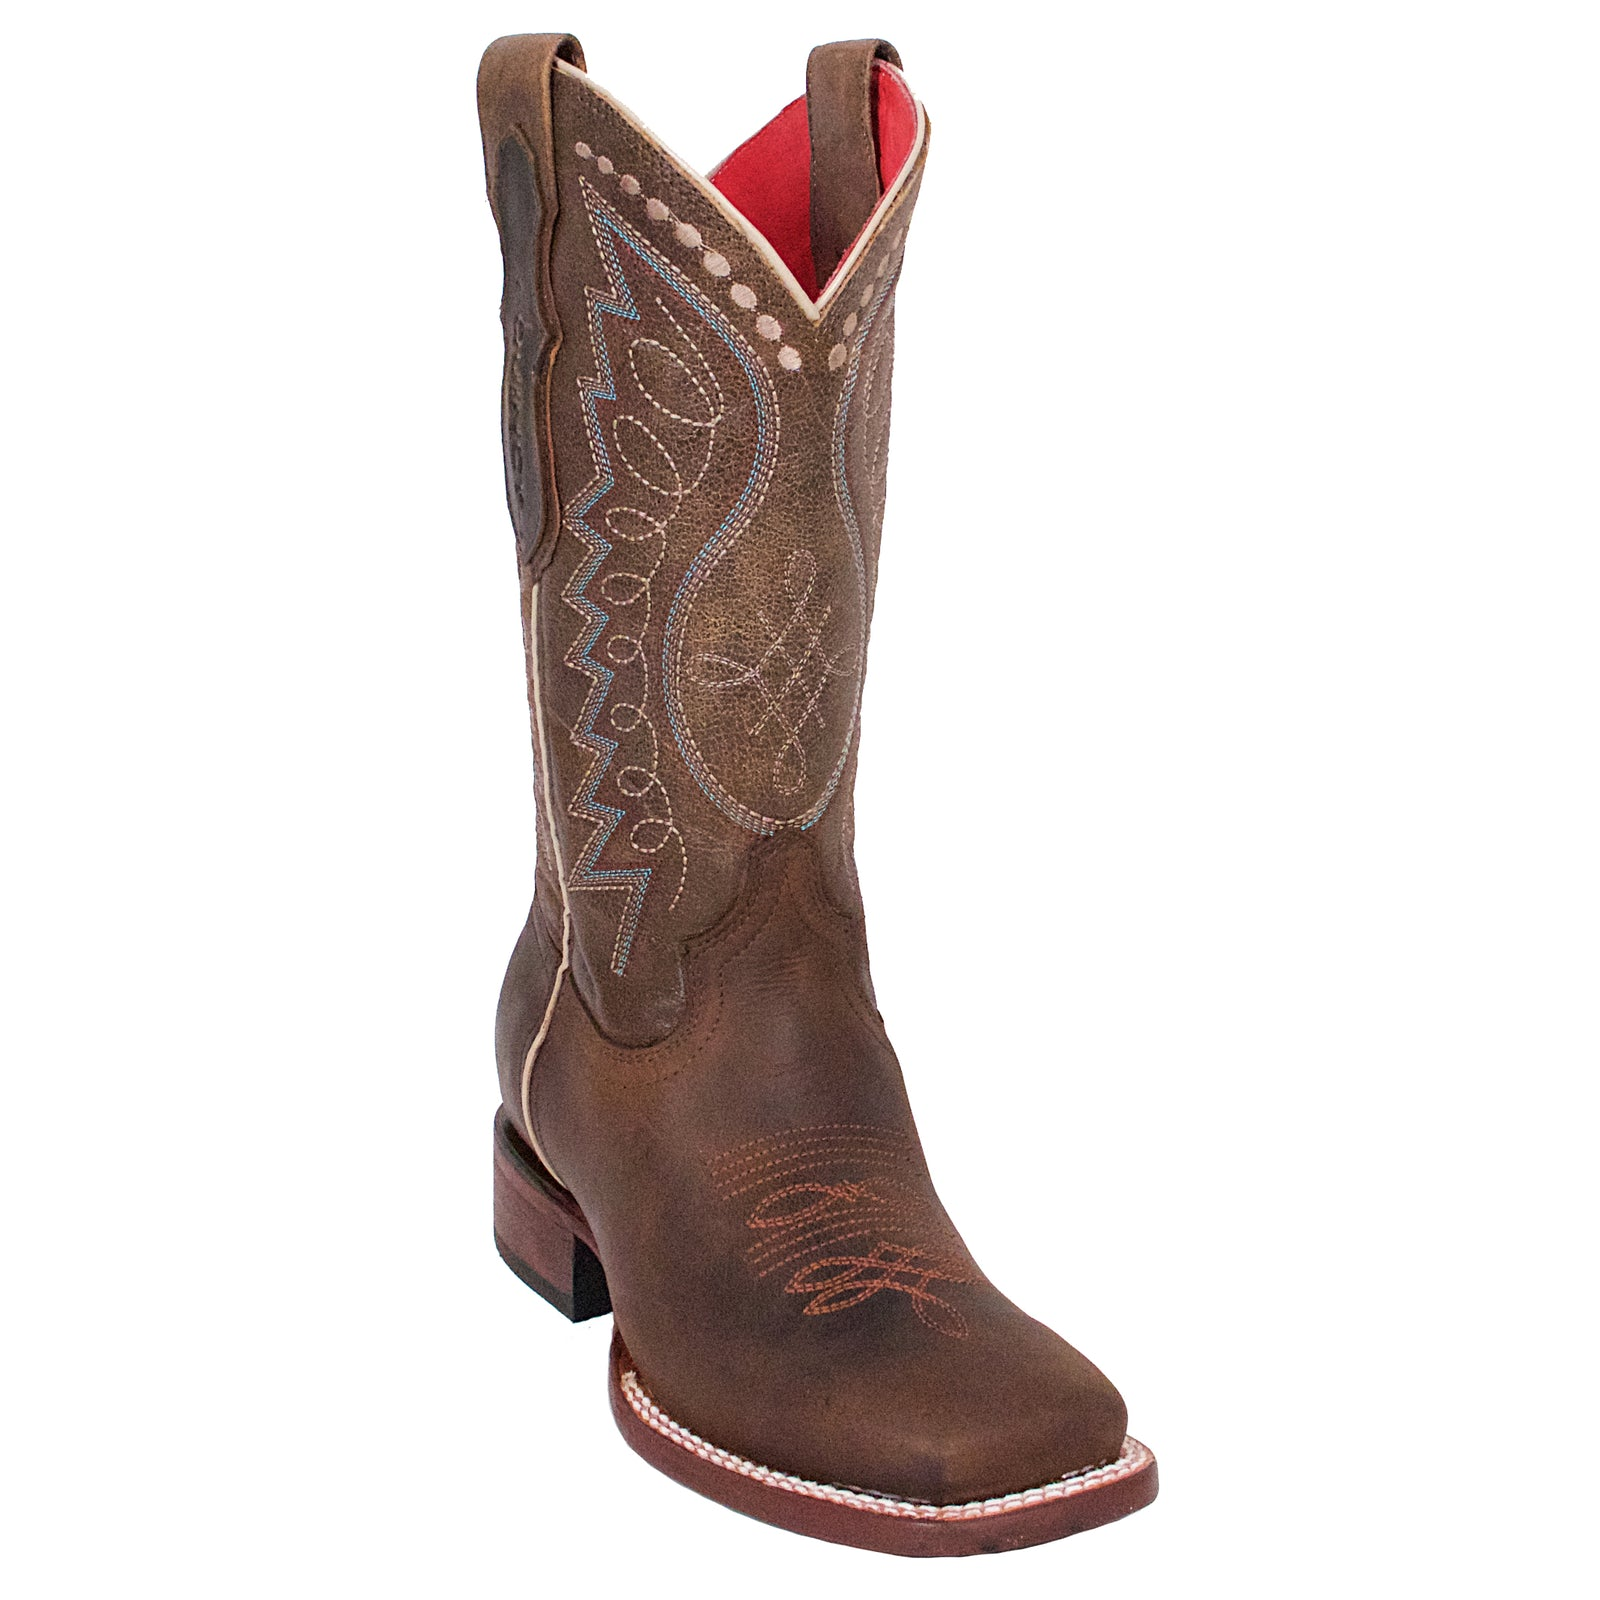 Quincy Brown Wide Square Toe Cowgirl Boots